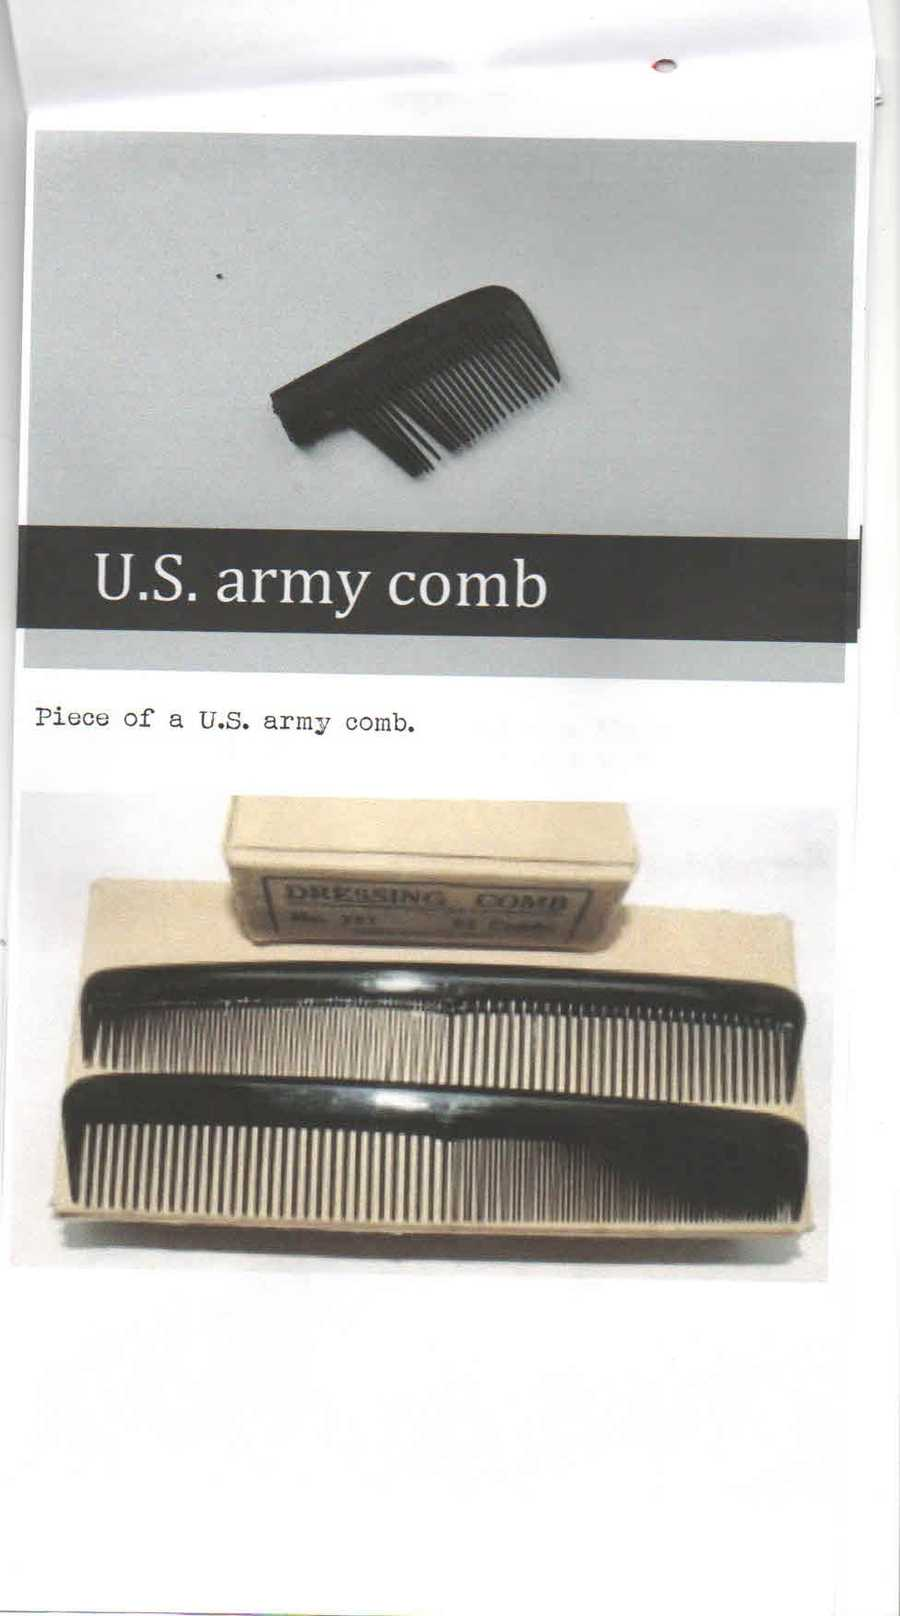 A piece of a U.S. Army comb.